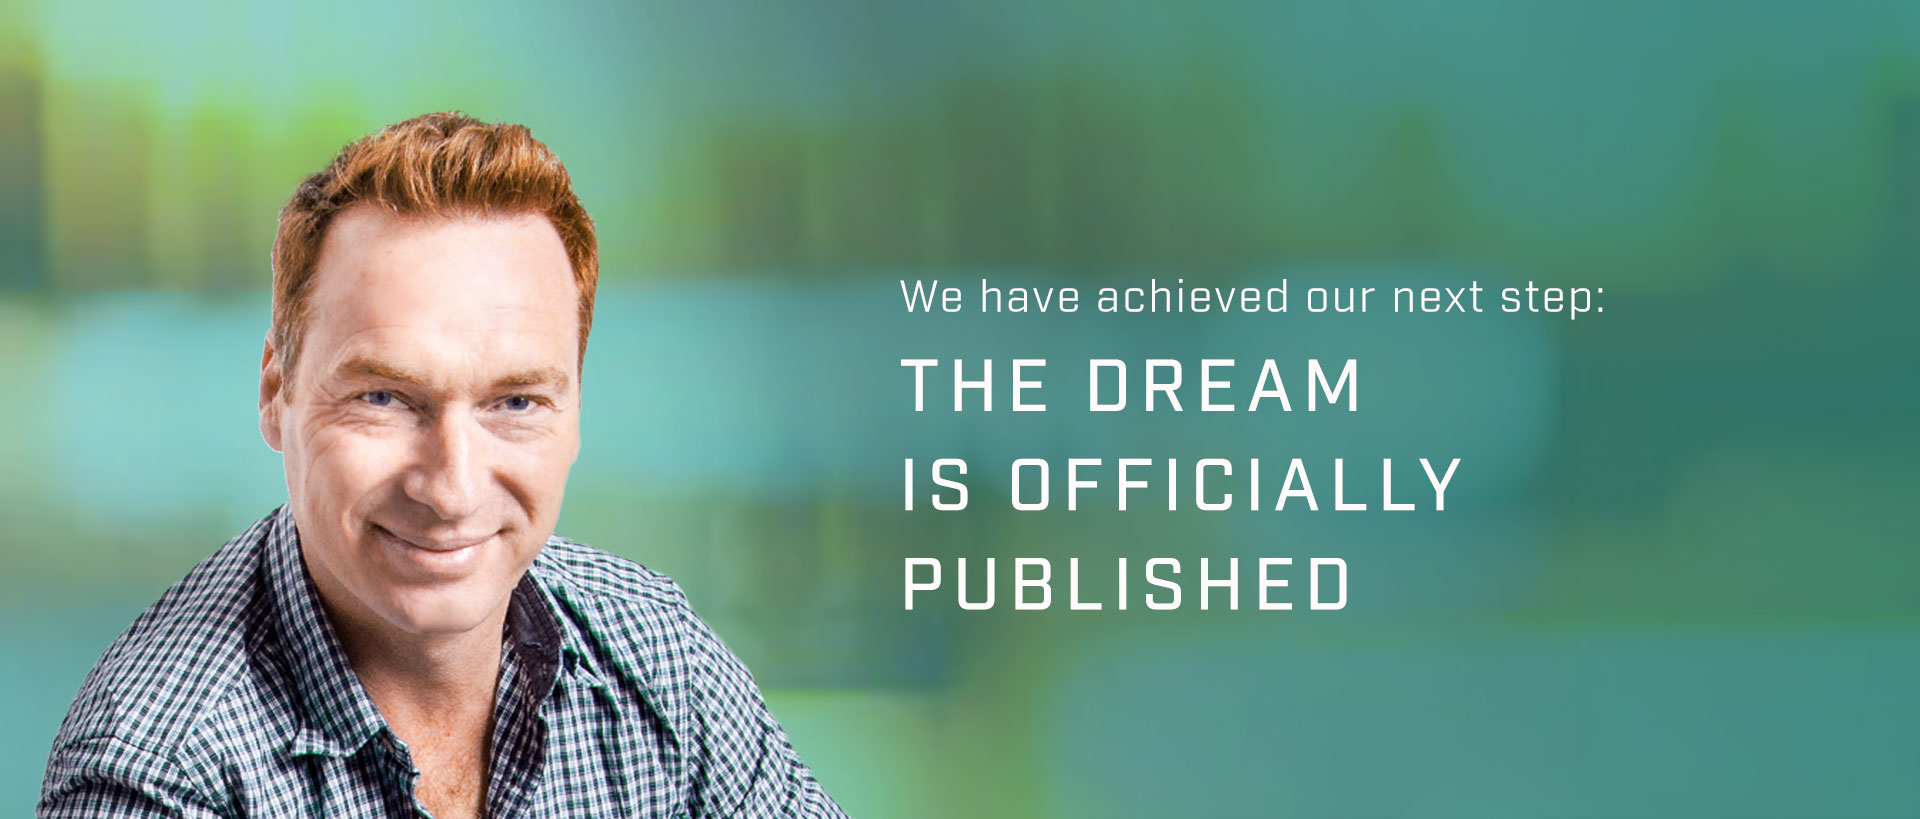 THE DREAM book is officially published